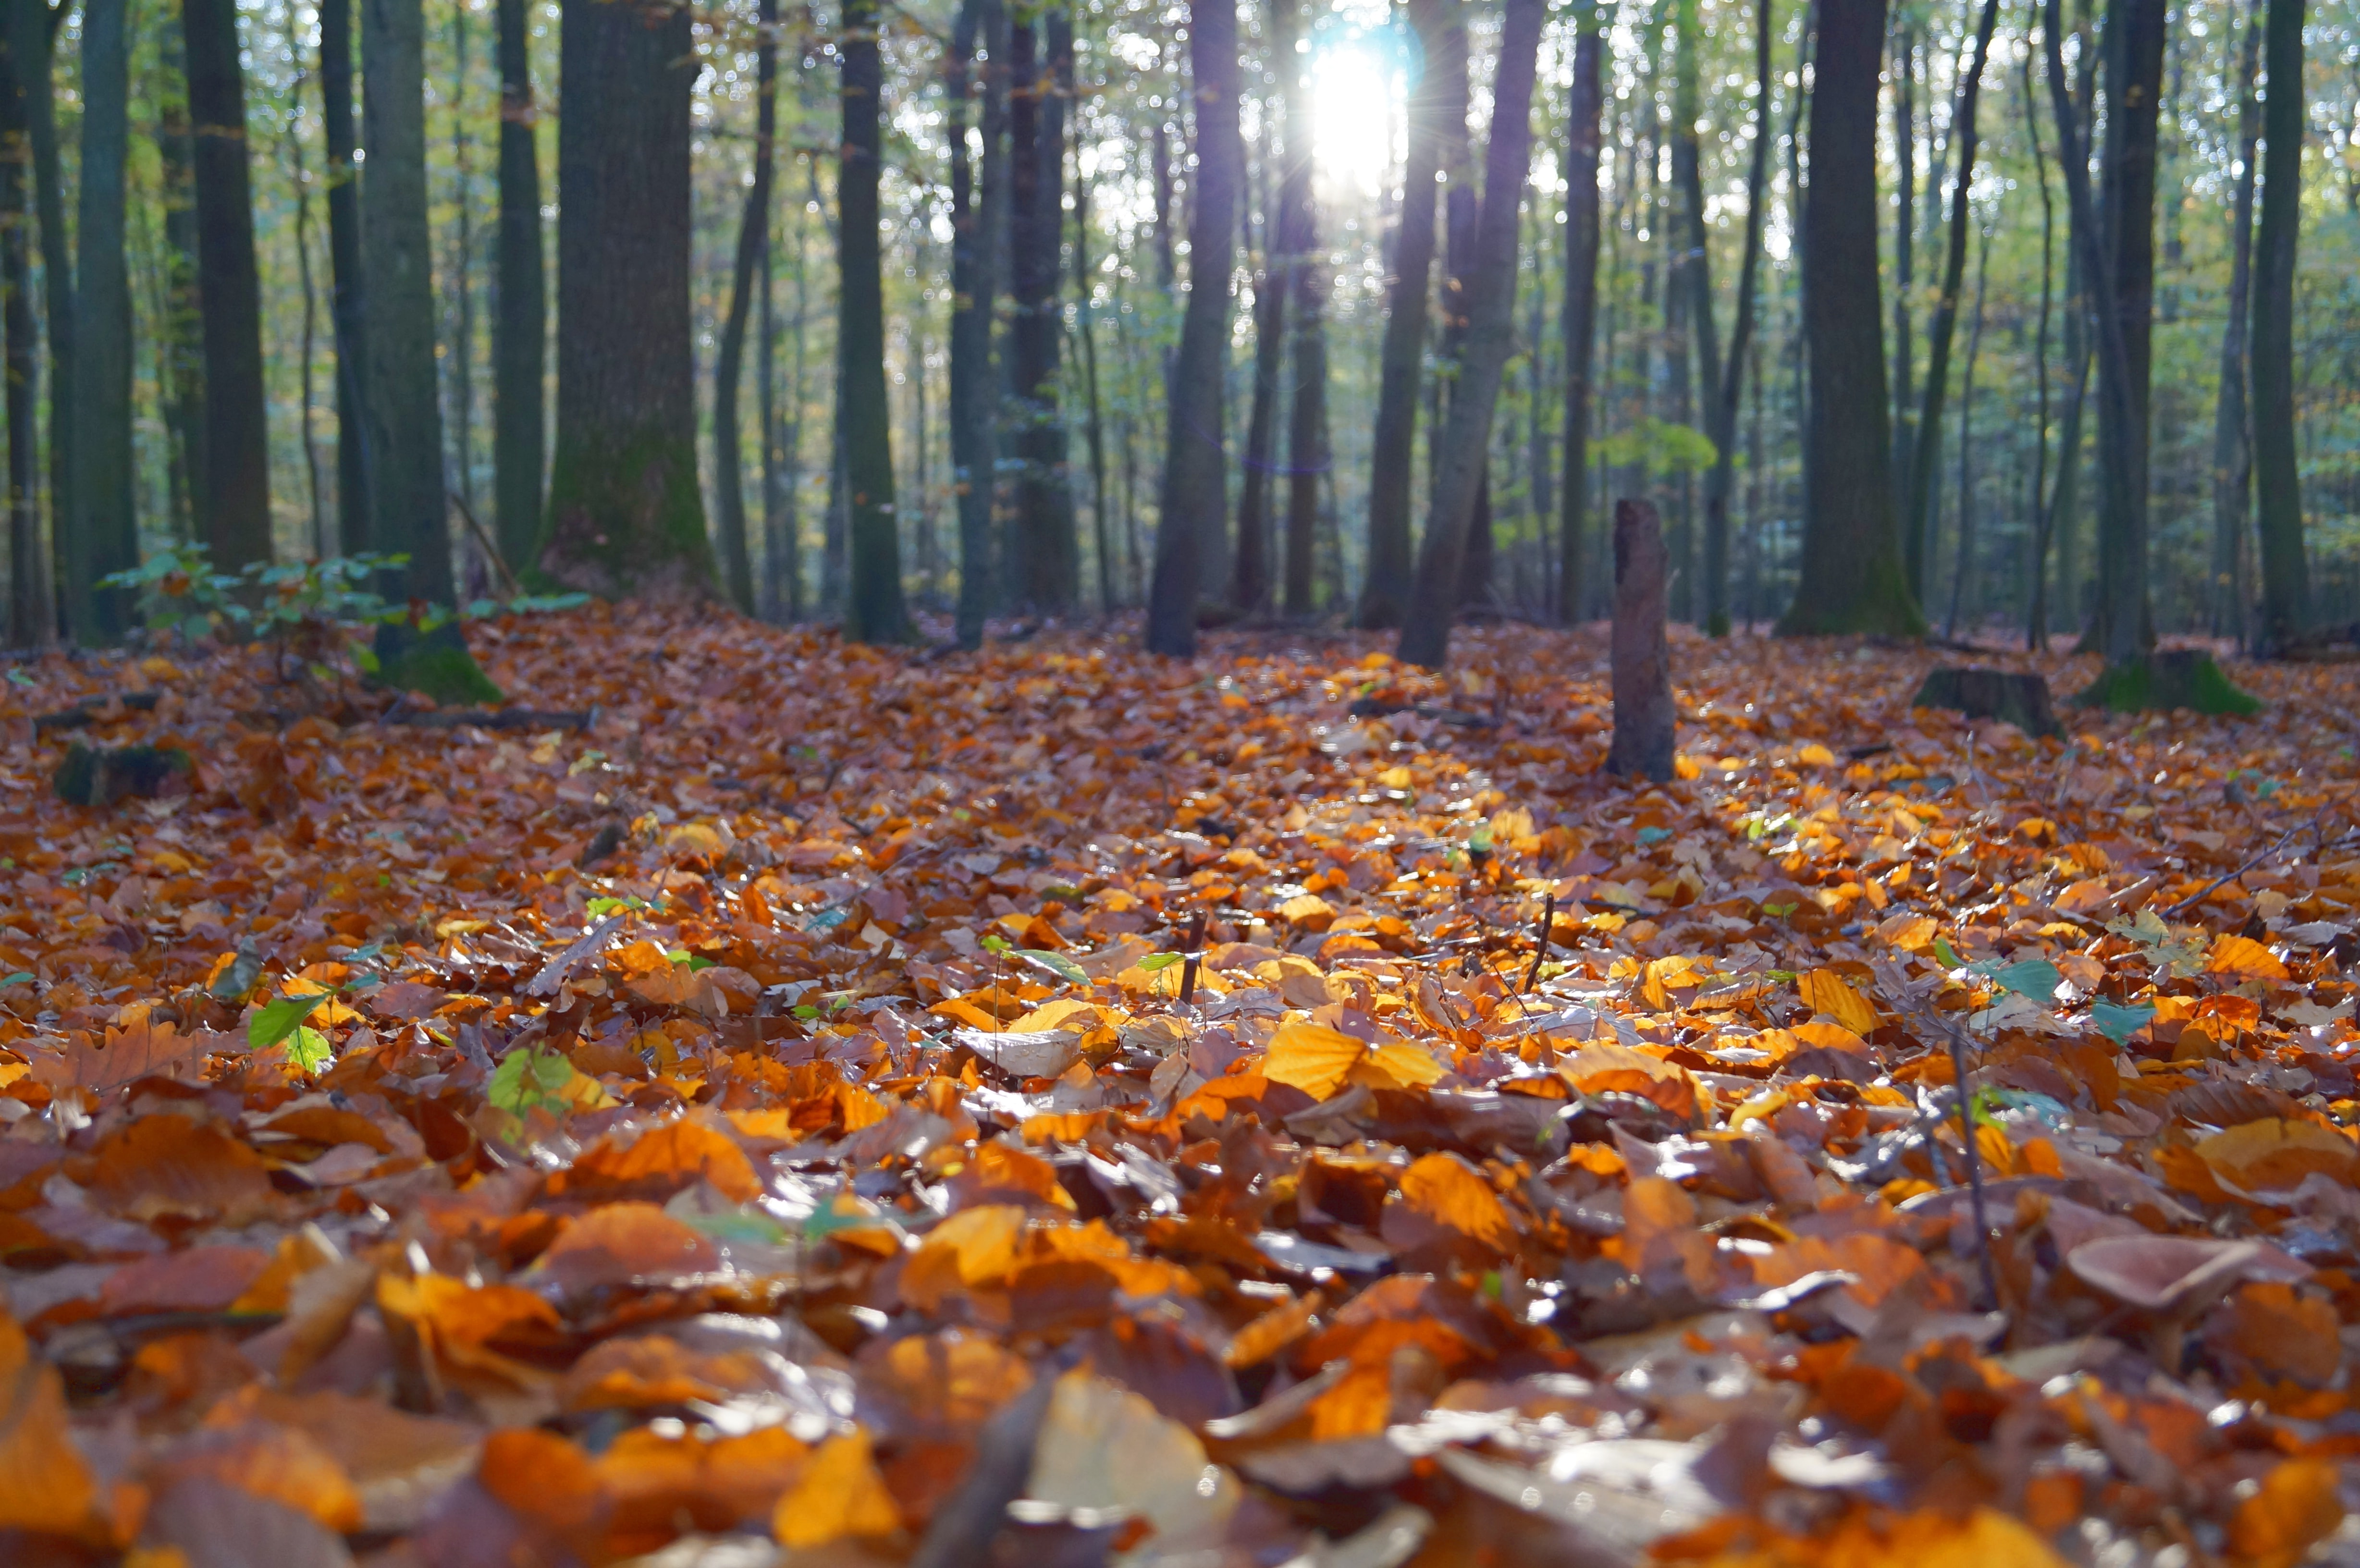 dried leaves on ground